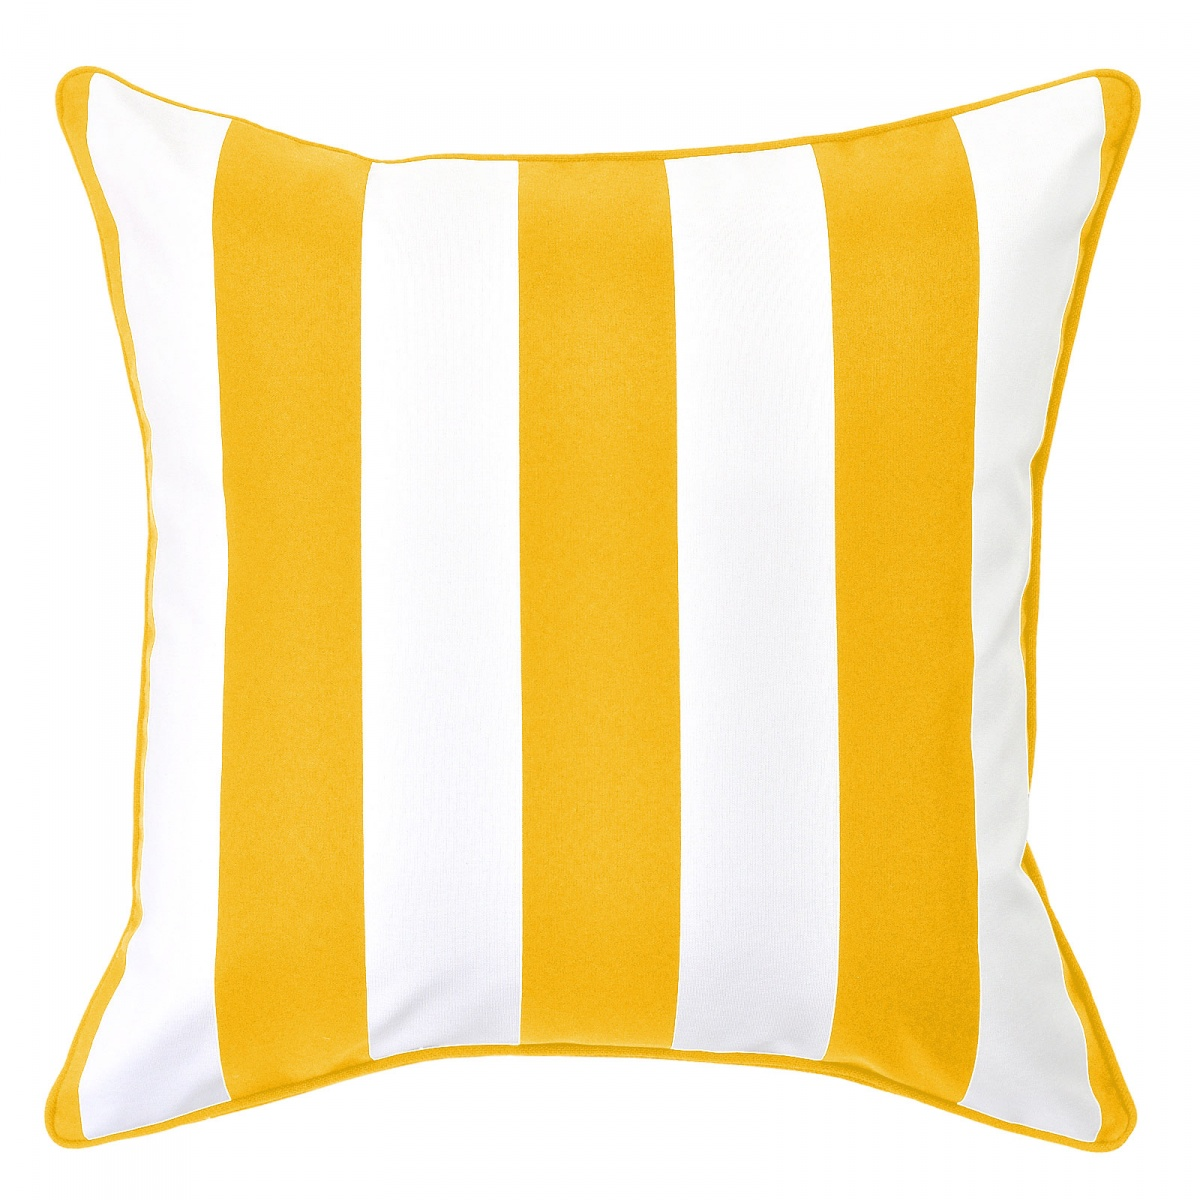 Mallacoota Sunshine Outdoor Cushion with Yellow Piping - 45x45cm